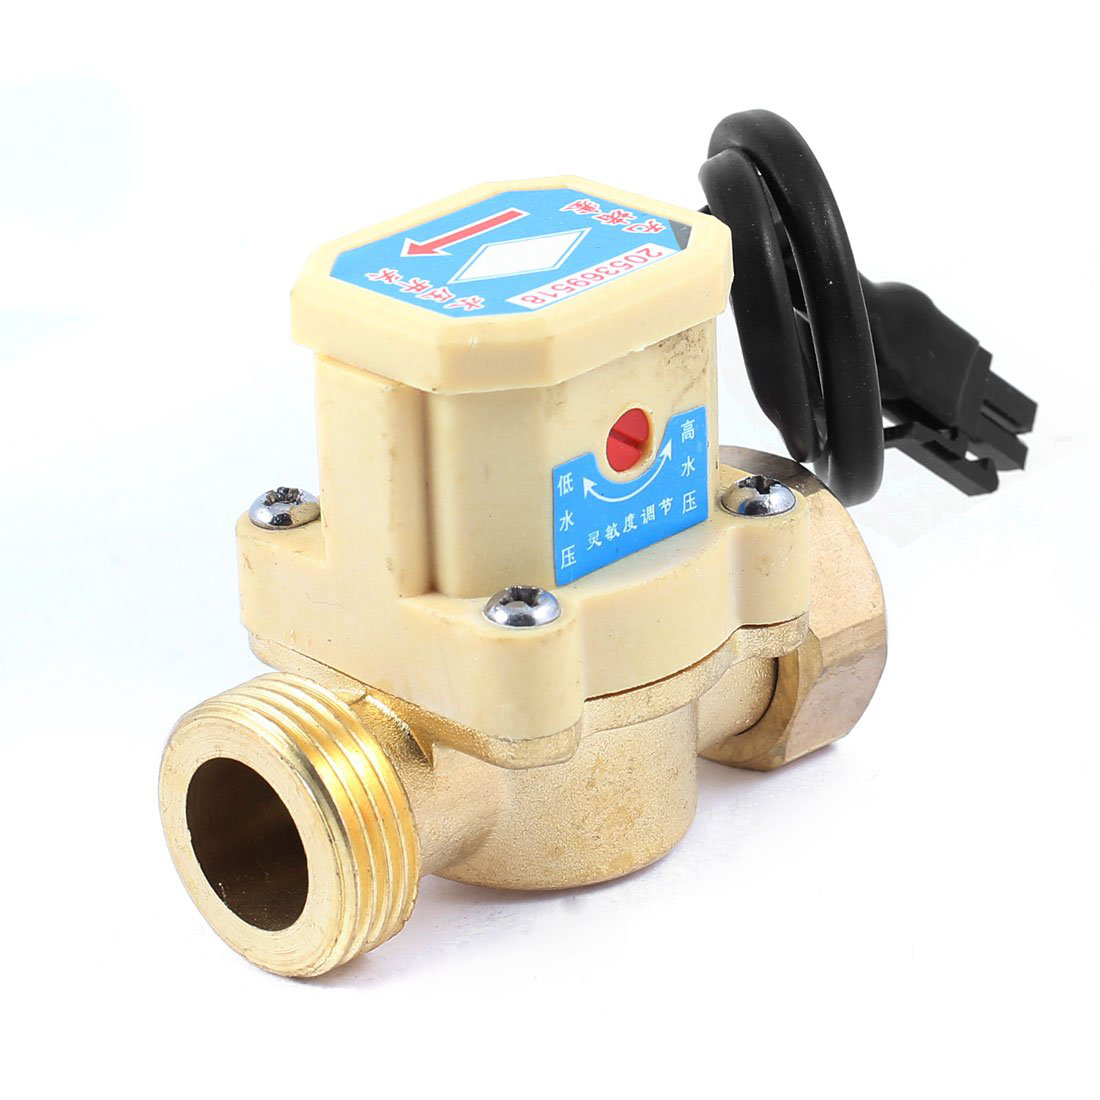 WSFS Hot Sale 26mm 3/4 PT Thread Connector 120W Pump Water Flow Sensor Switch ksol new style 26mm 3 4 pt thread connector 120w pump water flow sensor switch